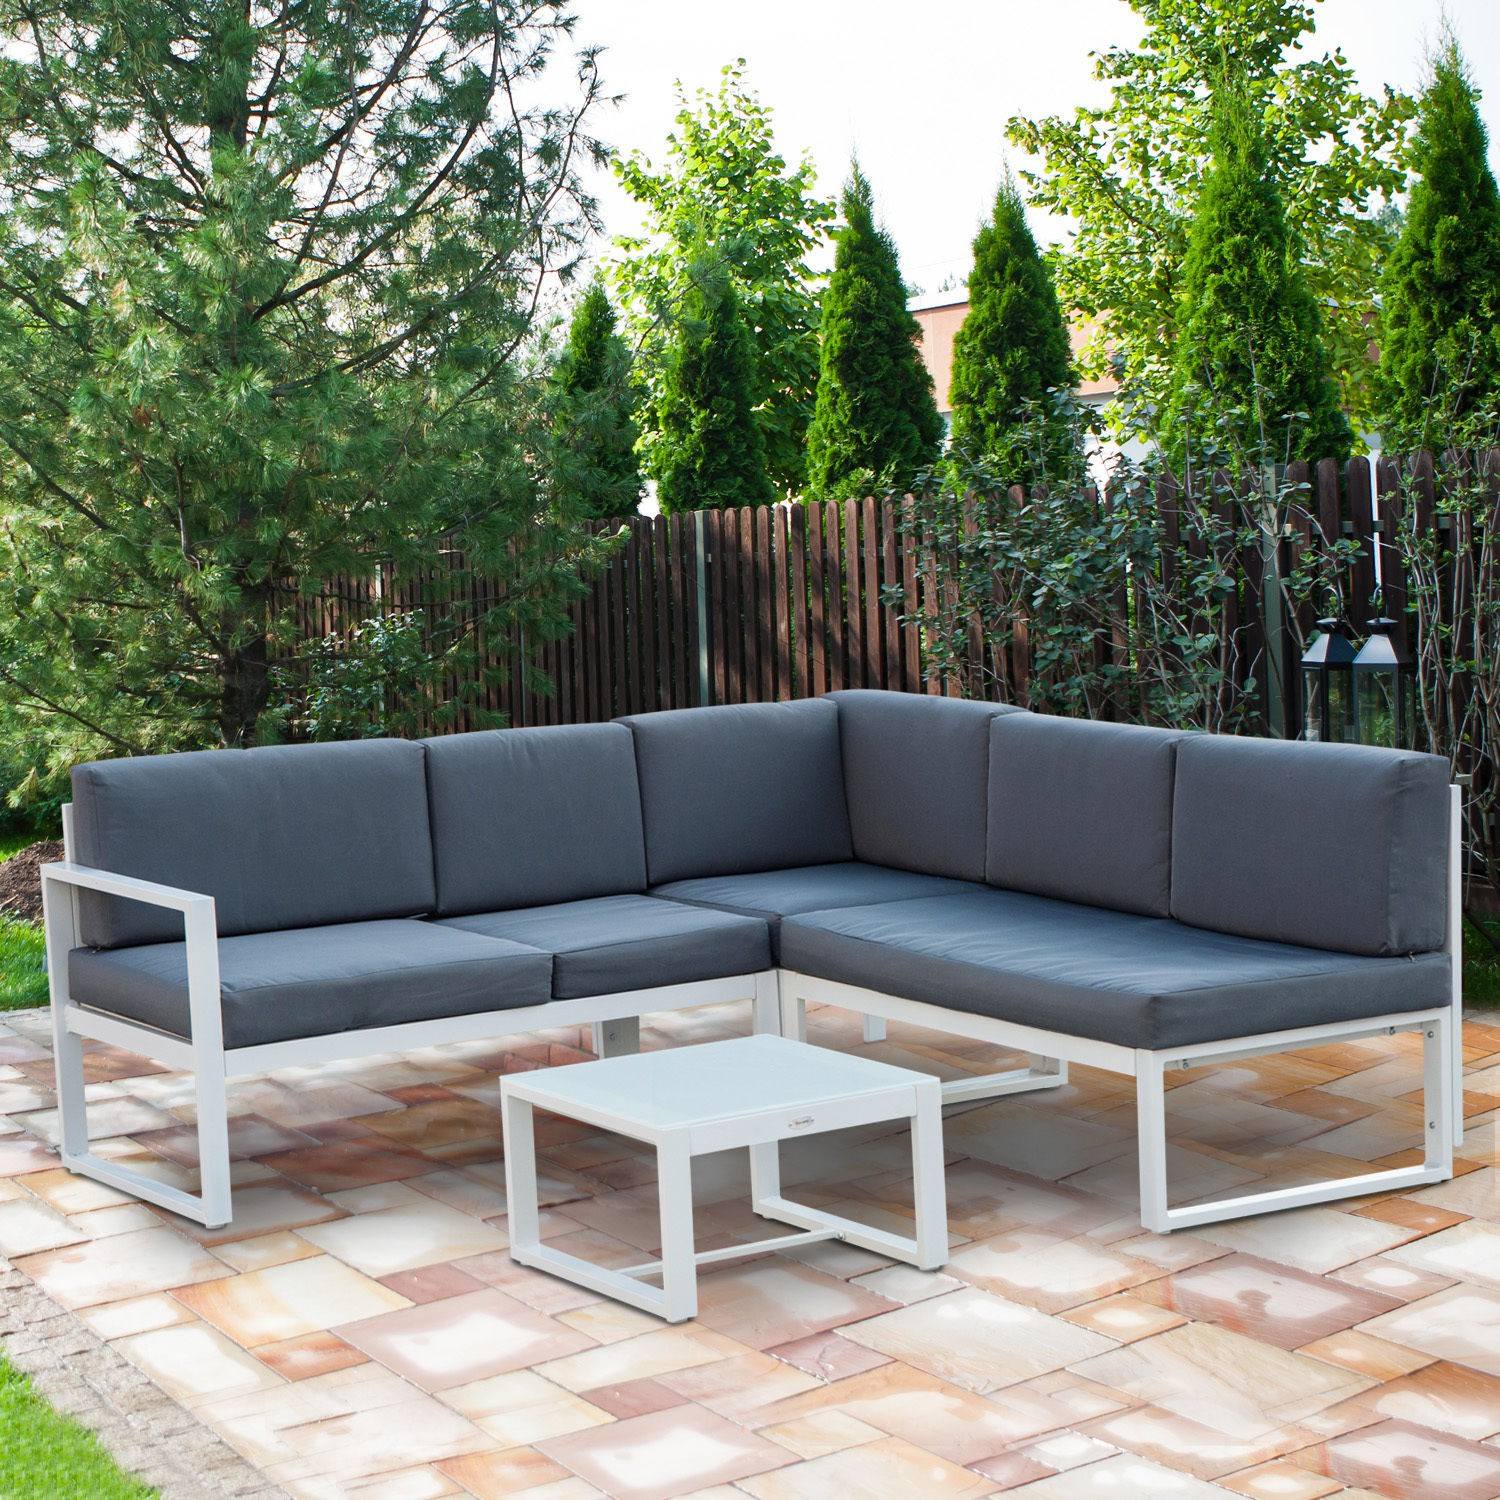 Best ideas about Outsunny Patio Furniture . Save or Pin Outsunny 4pc Adjustable Aluminum Outdoor Sectional Patio Now.